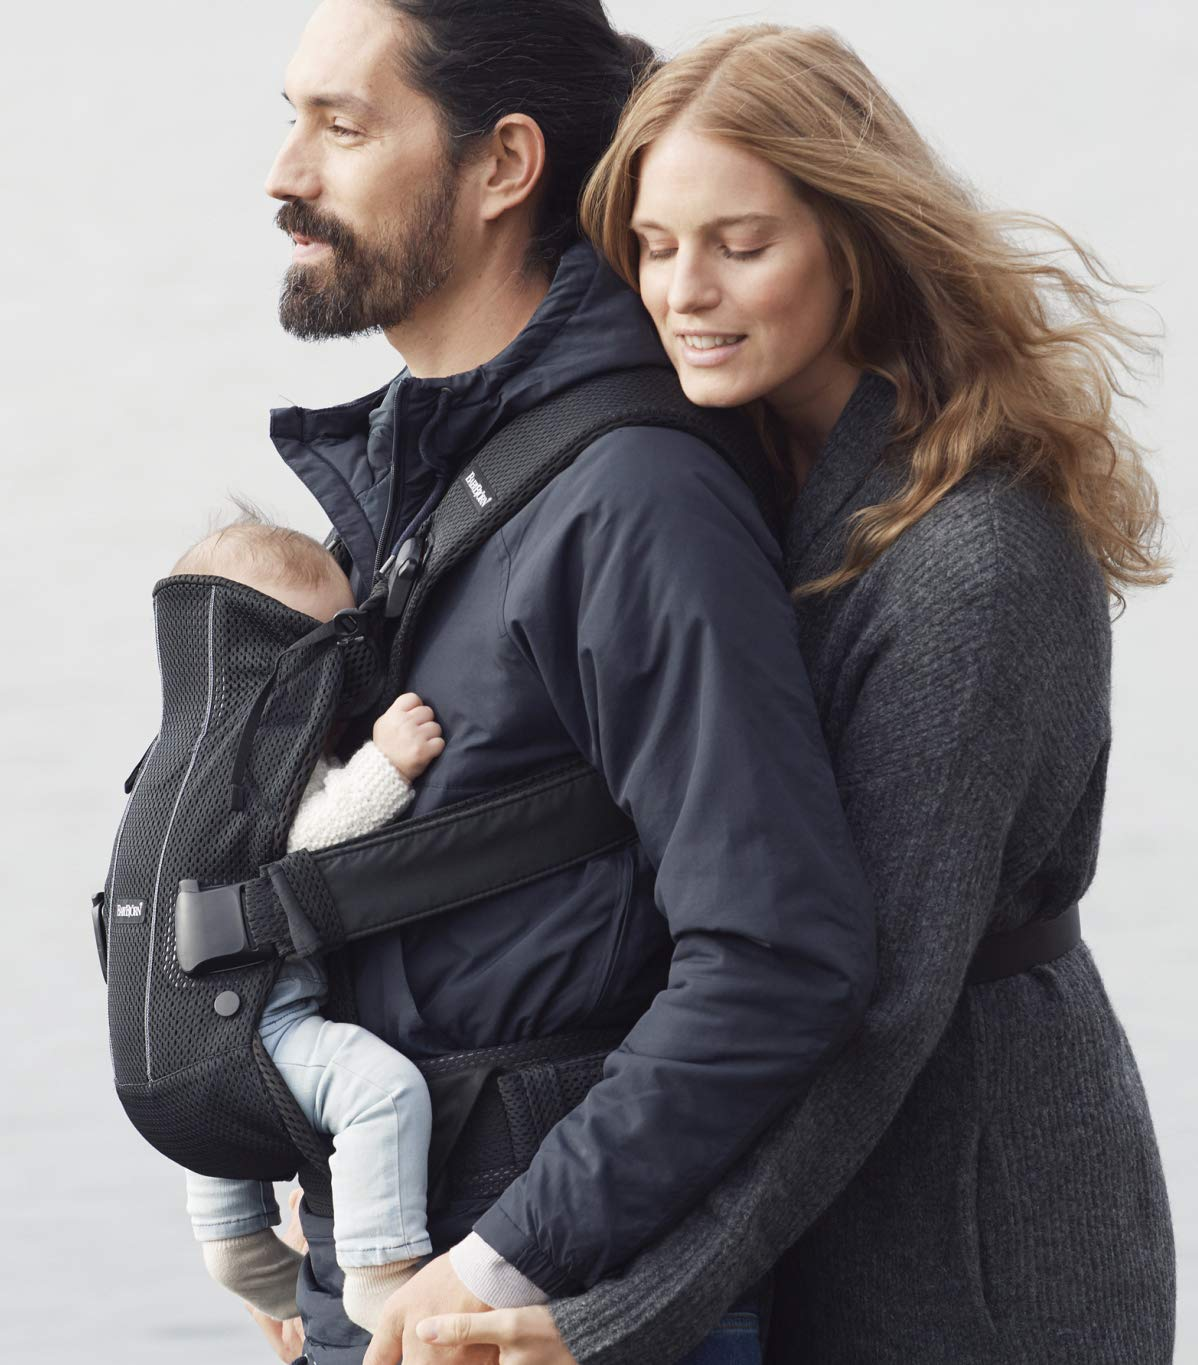 BABYBJÖRN Baby Carrier One Air, 3D Mesh, Black, 2018 Edition Baby Bjorn The latest version (2018) with soft and breathable mesh that dries quickly Ergonomic baby carrier with excellent support 4 carrying positions: facing in (two height positions), facing out or on your back 8